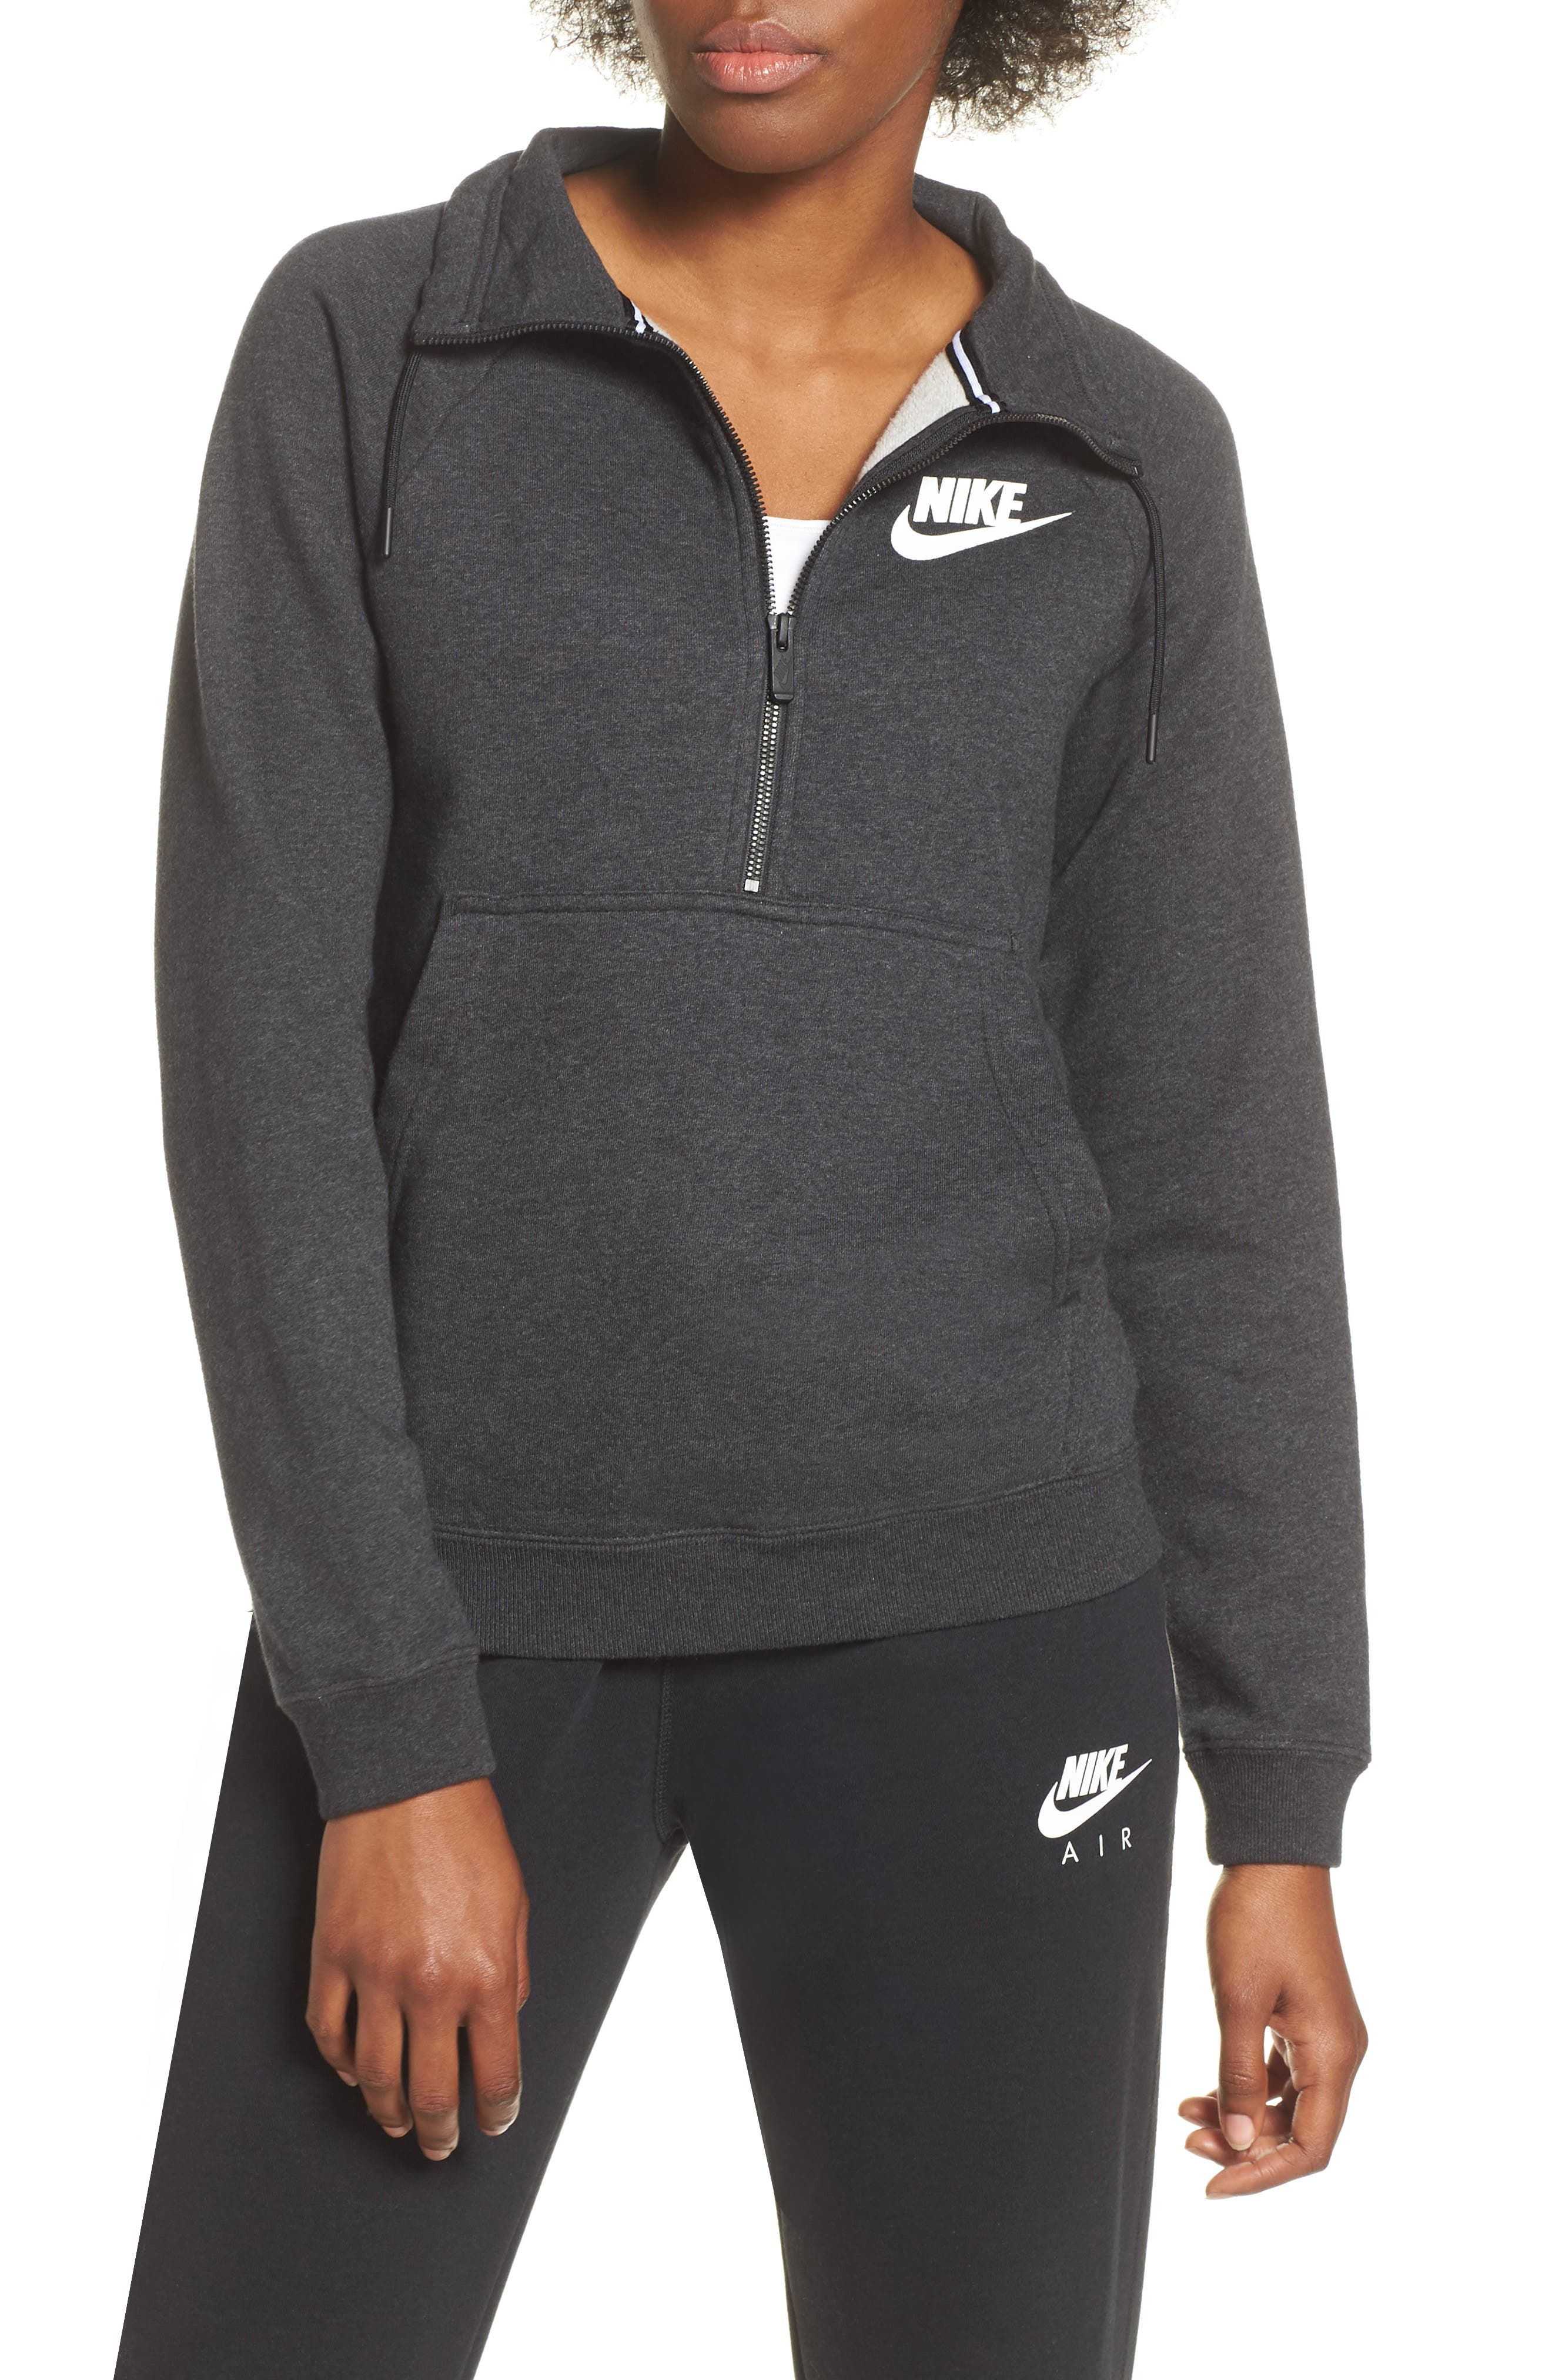 cc4410192a8d Tops Nike Clothing for Women